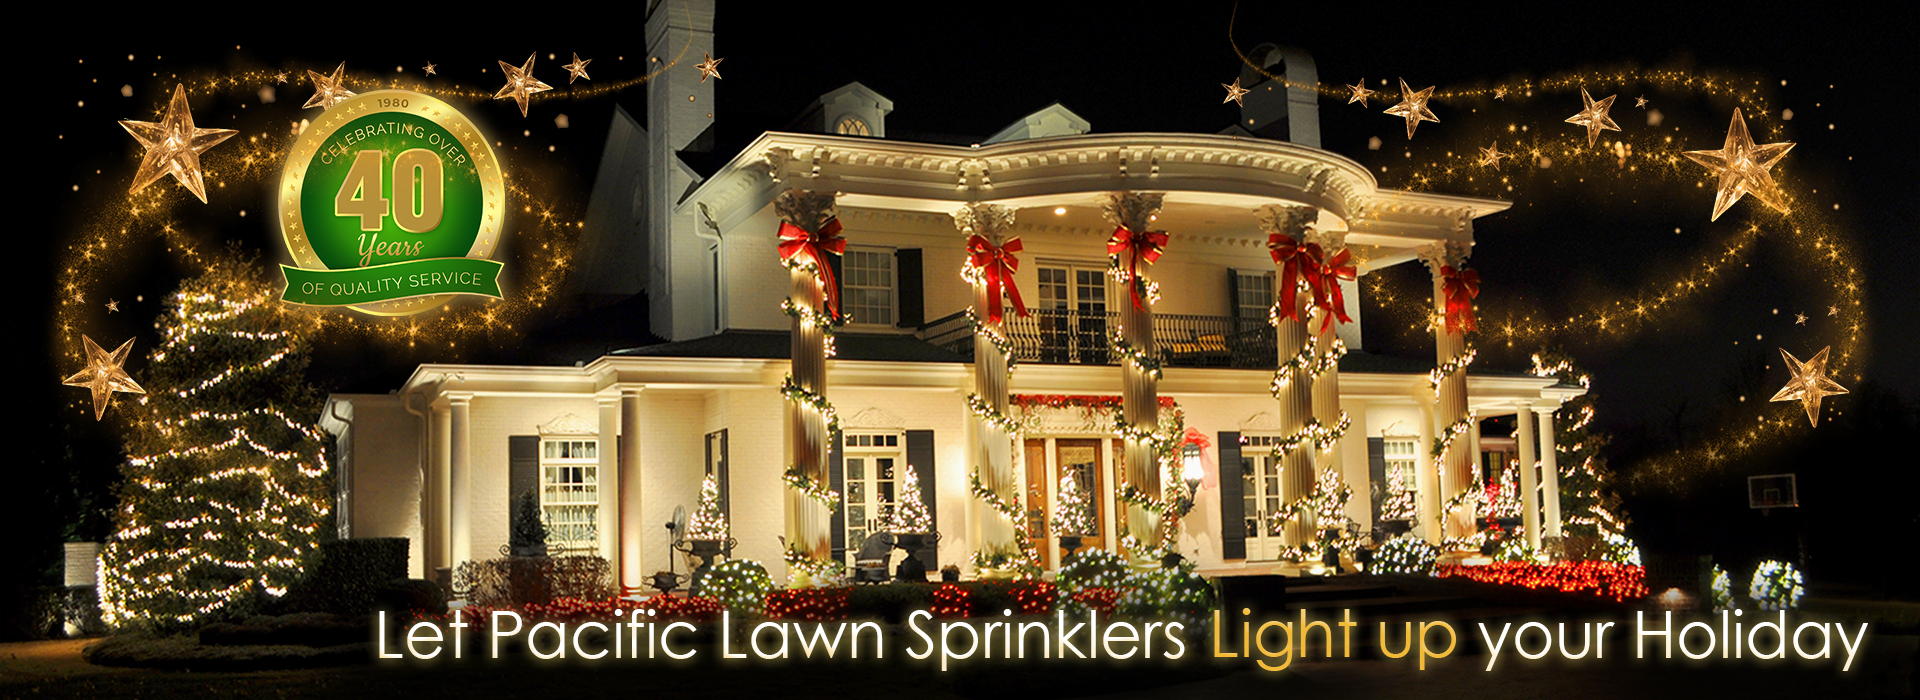 Holiday lighting by Pacific Lawn Sprinklers